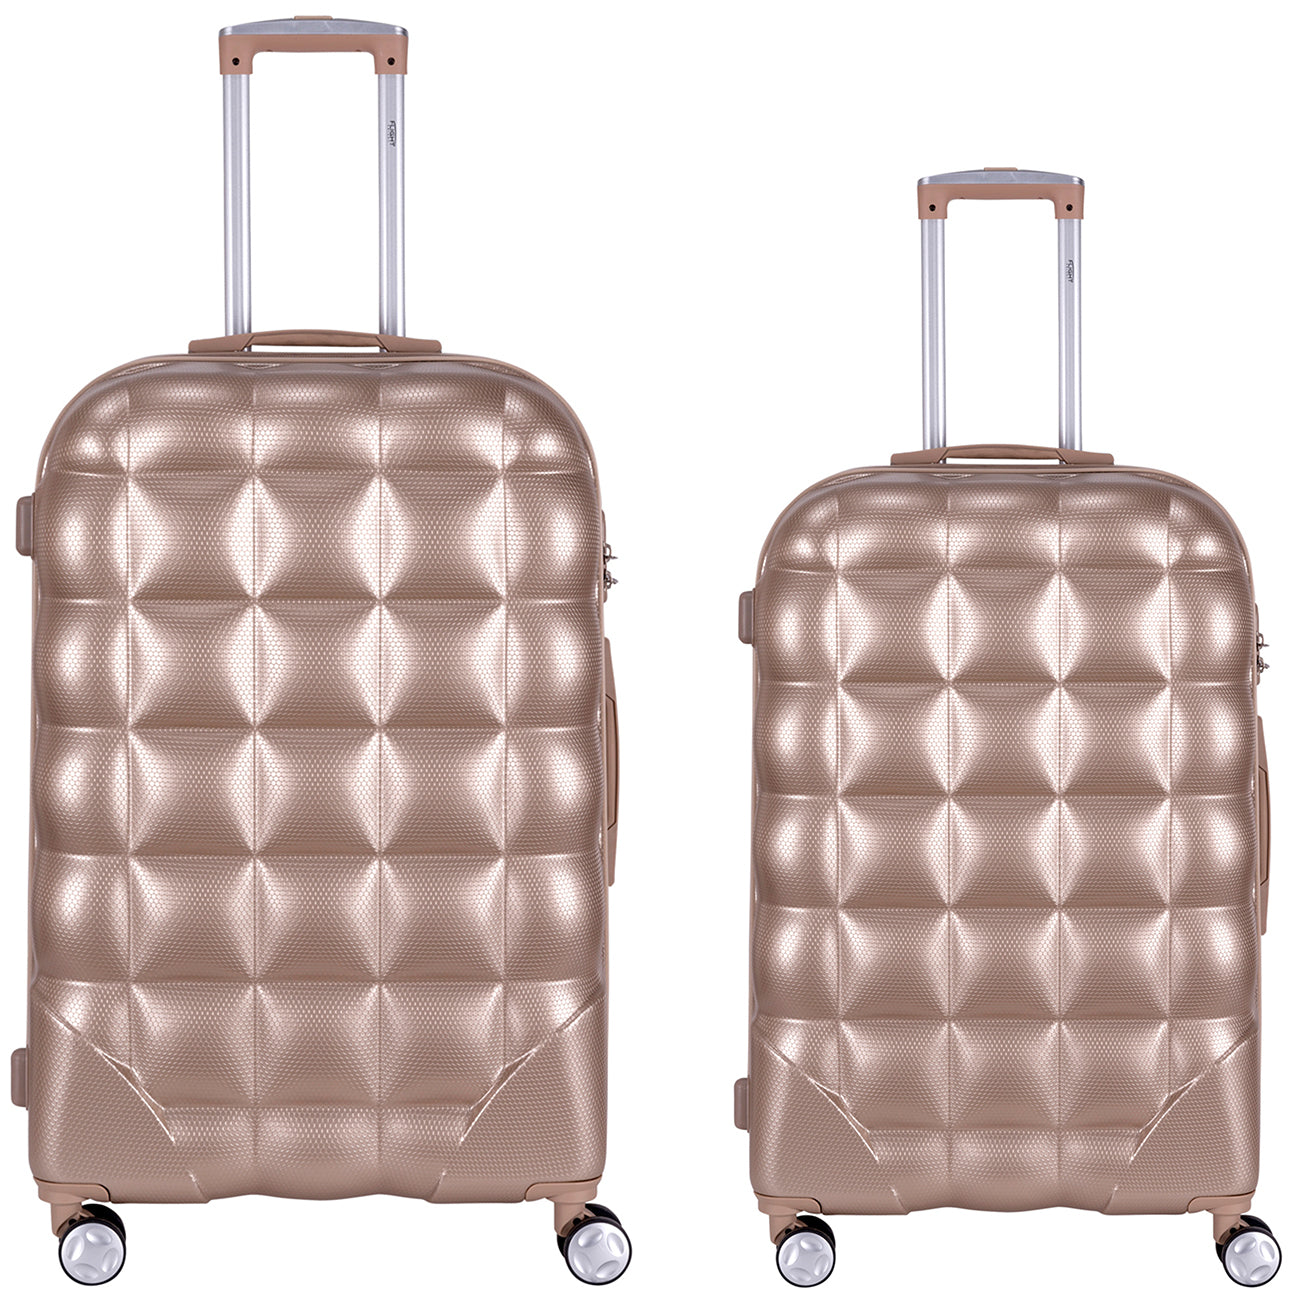 DANIEL Bubble Cabin & Hold Luggage